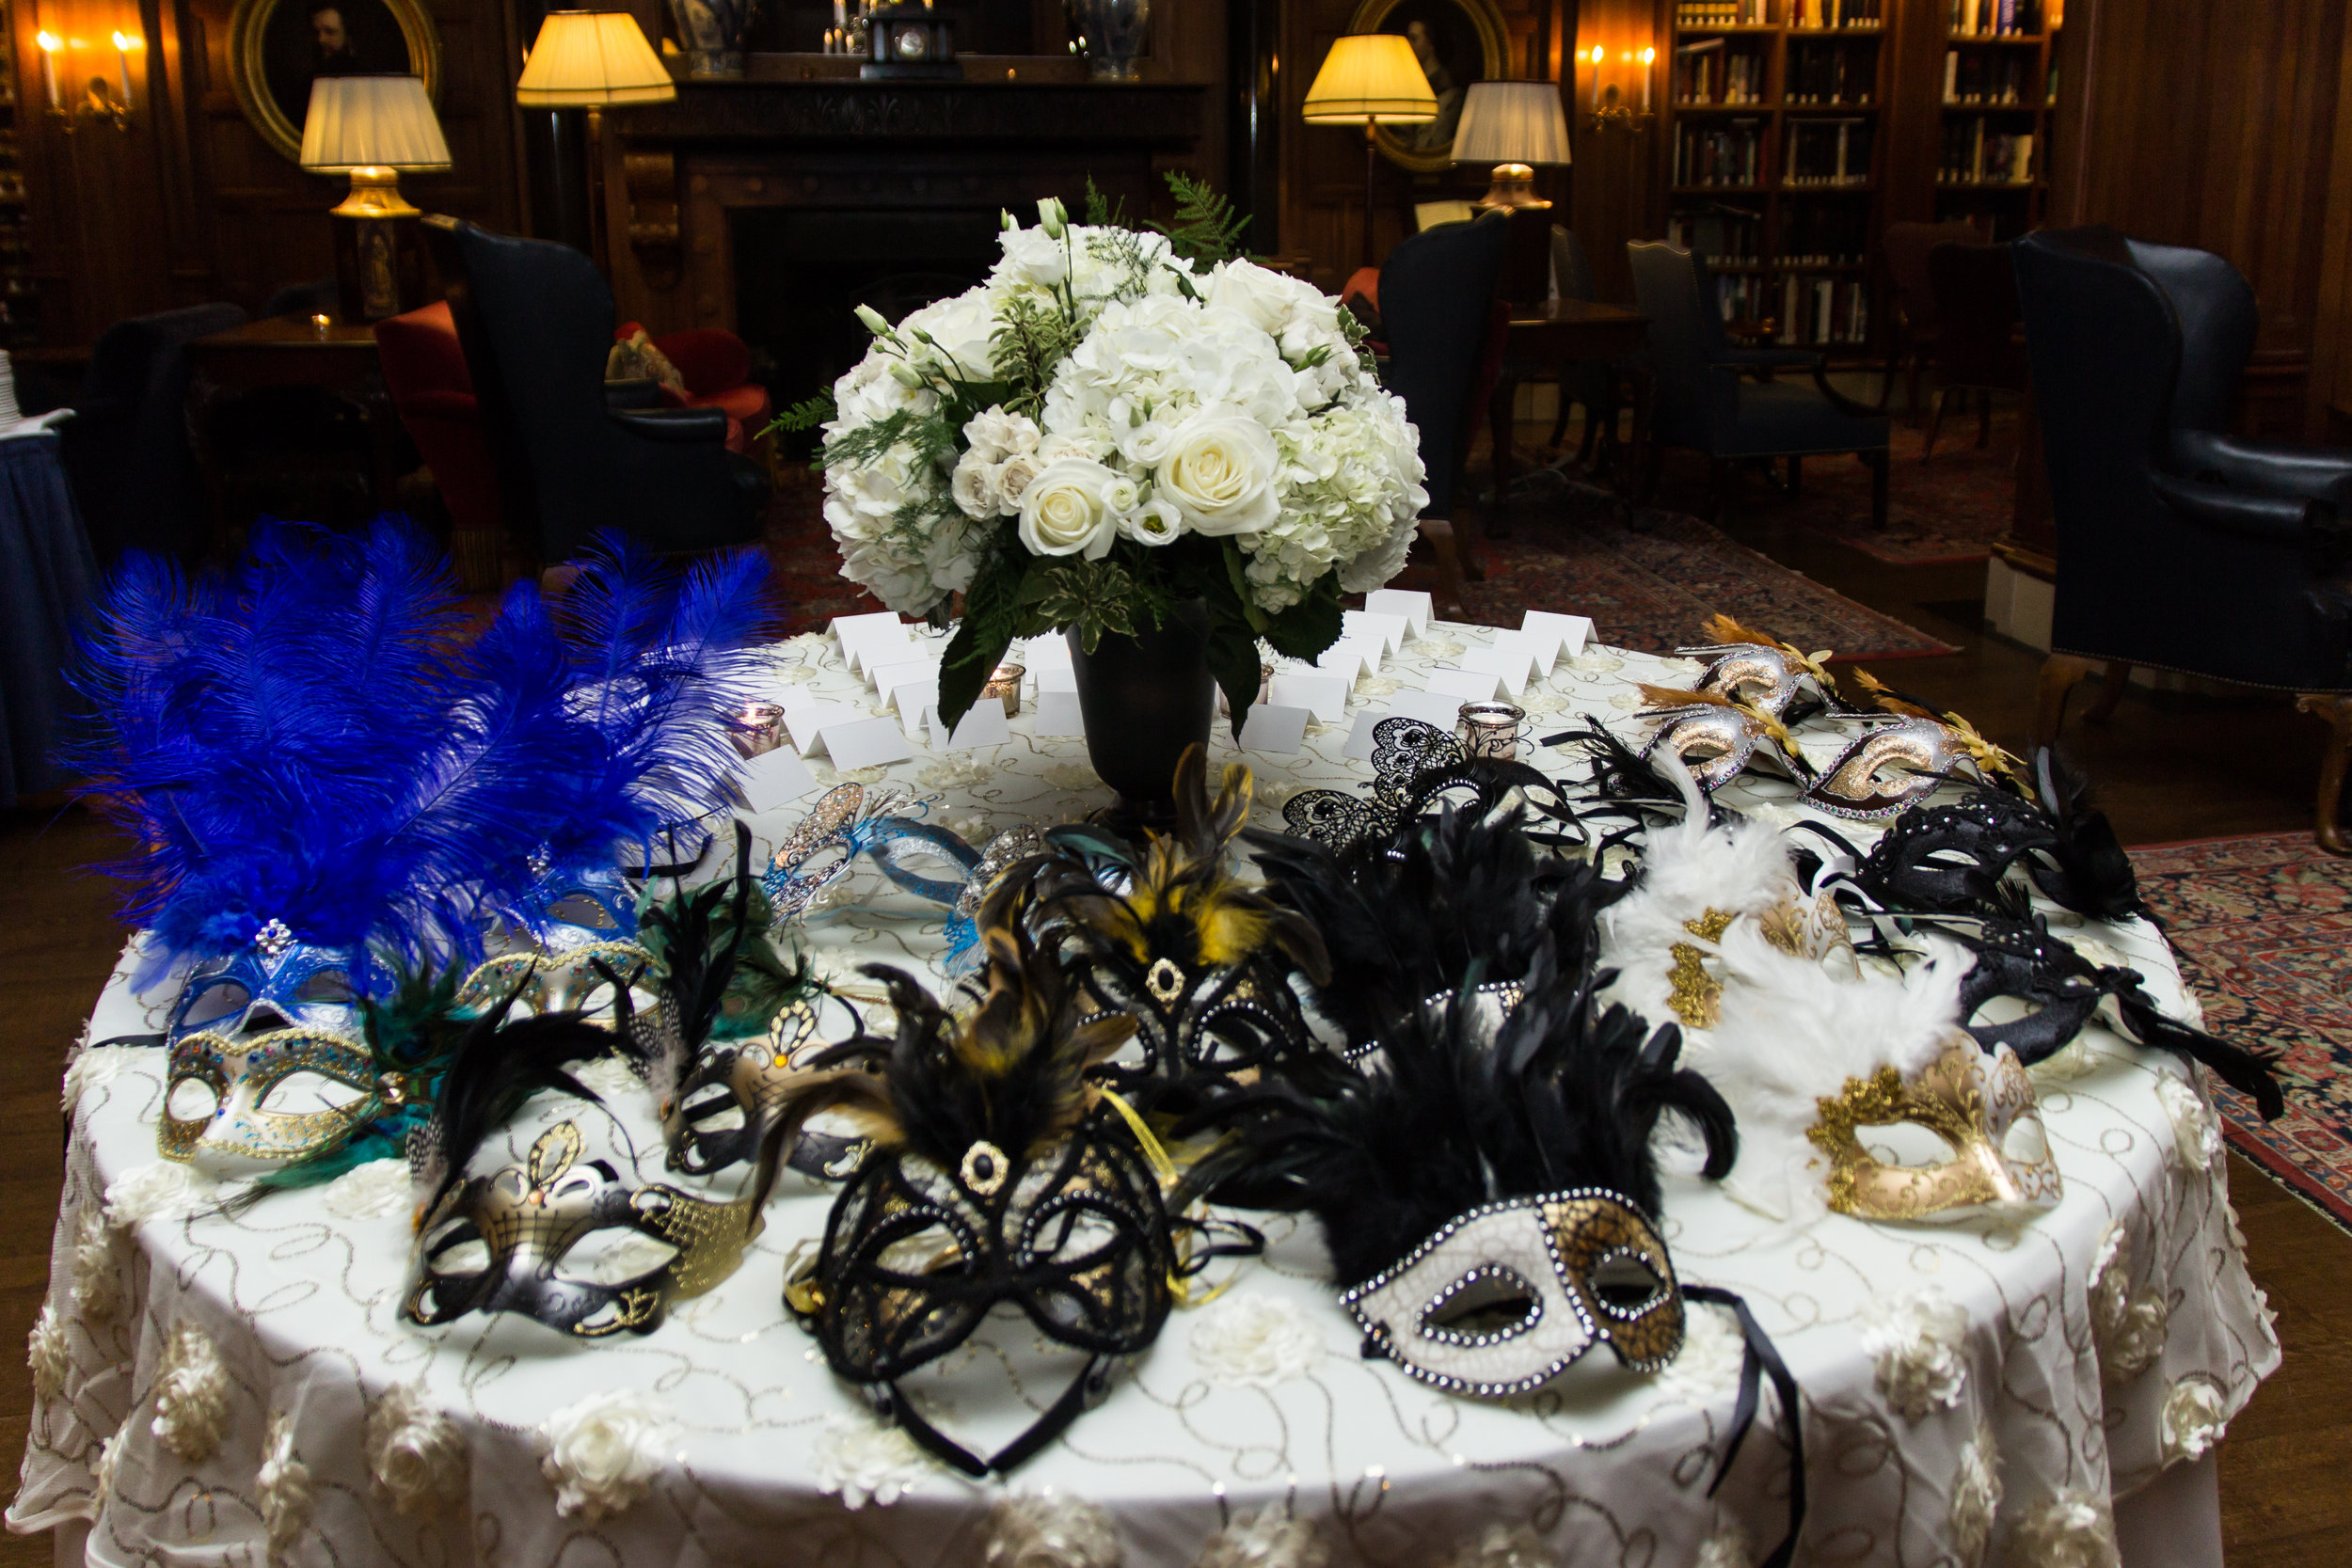 Masquerade masks trimmed with lace and feathers